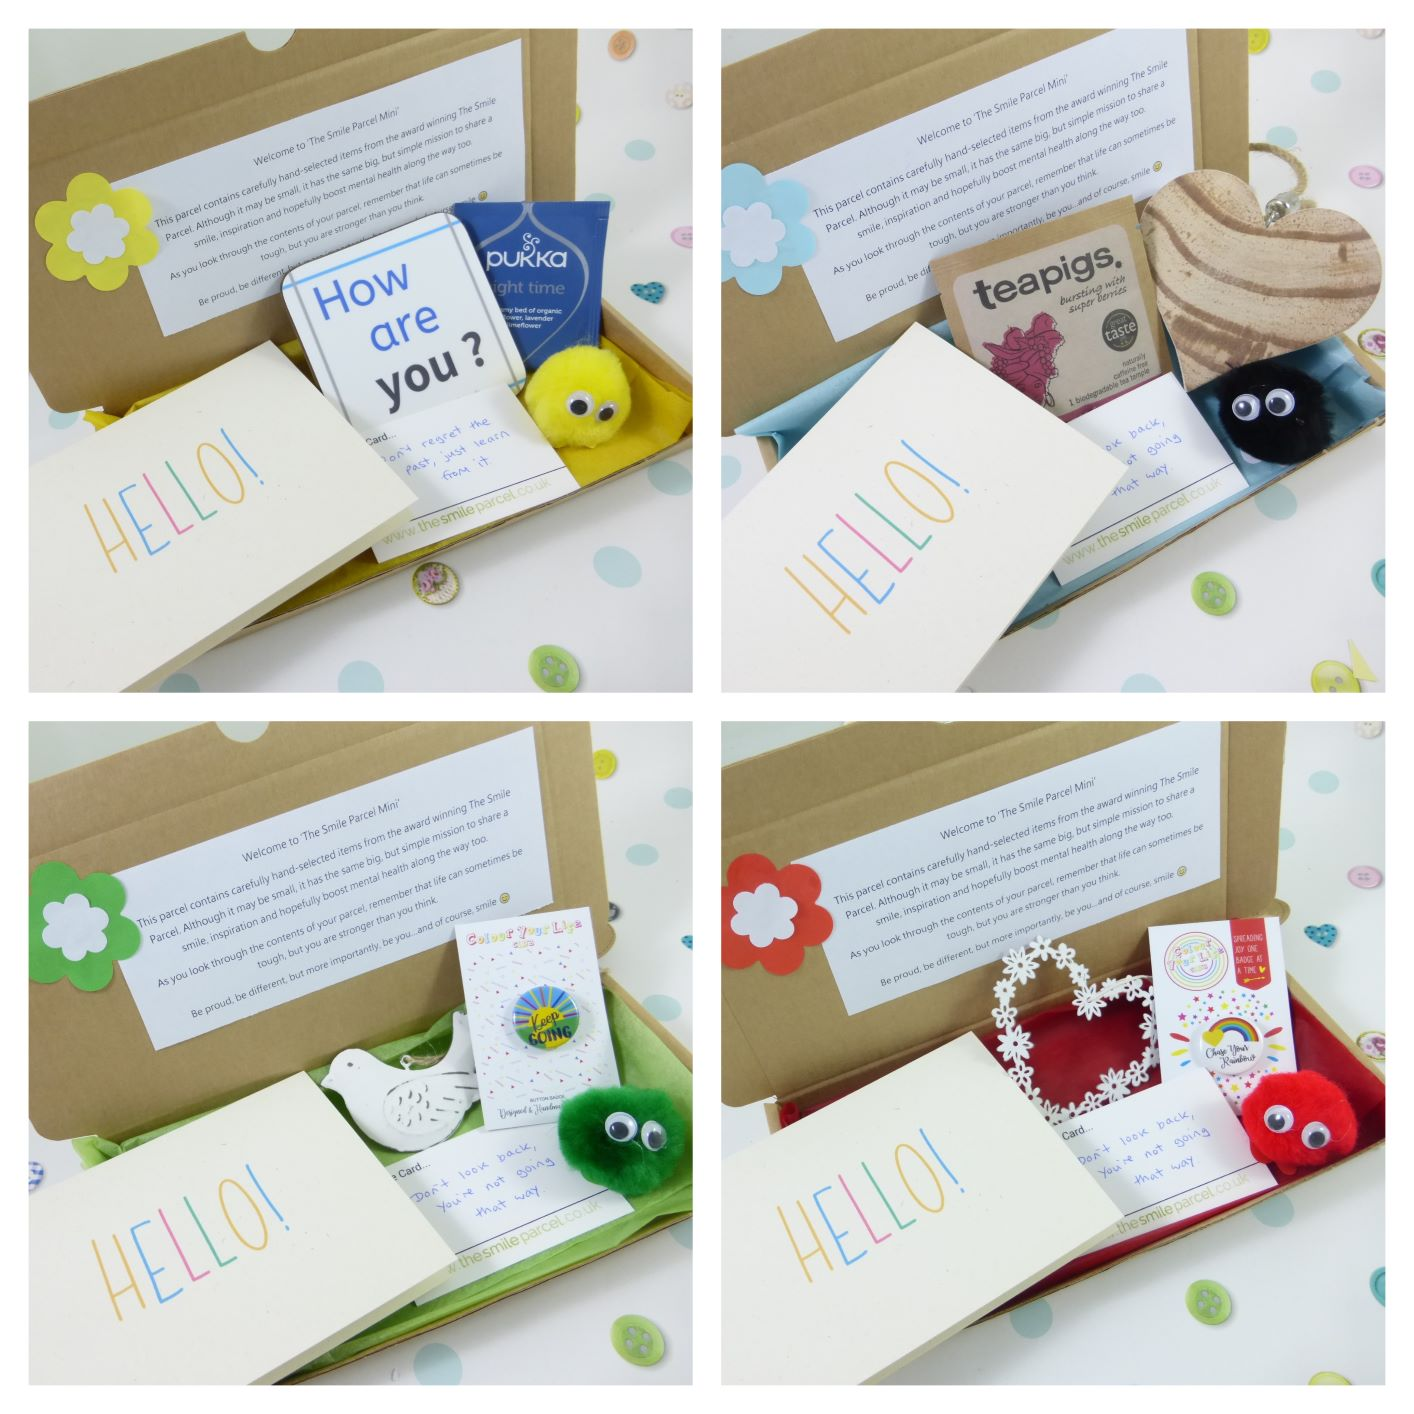 Hello, Letterbox Friendly, Pick Me Up Gift, The Smile Parcel Mini, Get Well Soon, Well Done, Self Care Box, Mental Health Gift Kind Shop 3